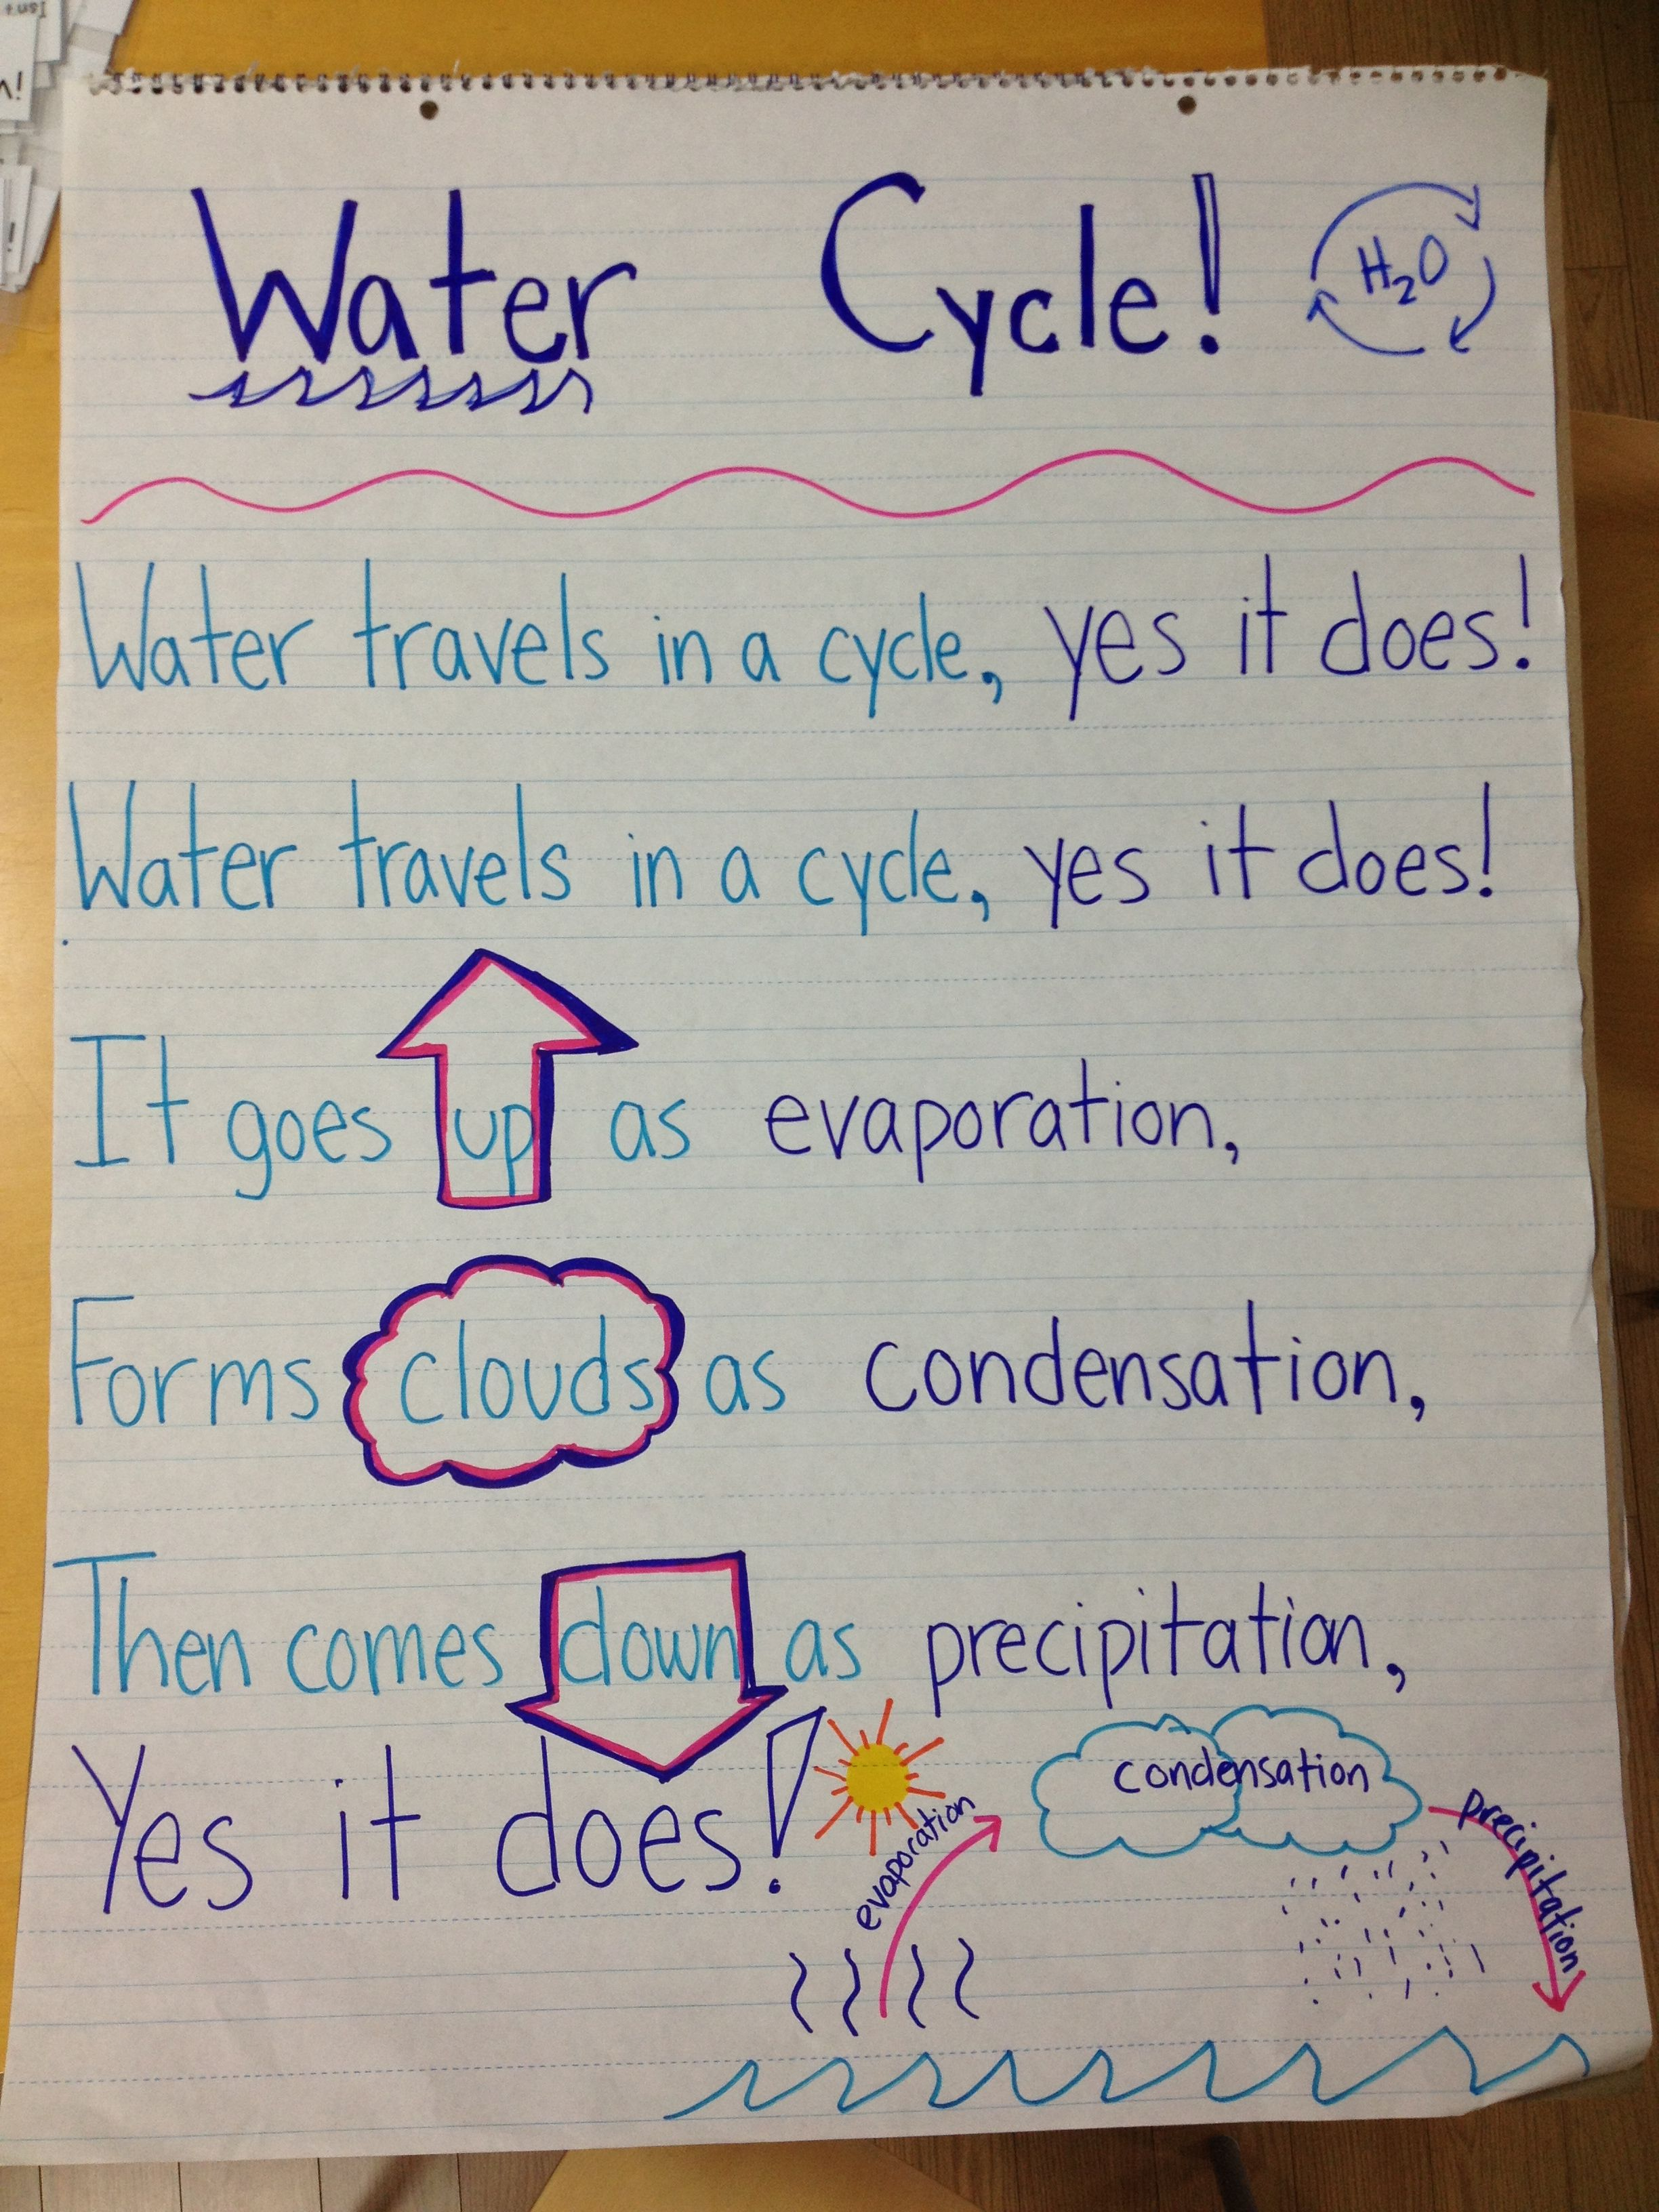 hight resolution of b576a73d4a6d40425e7dbf69b14bcdcd jpg 1 200 1 600 pixels water cycle song water cycle project water